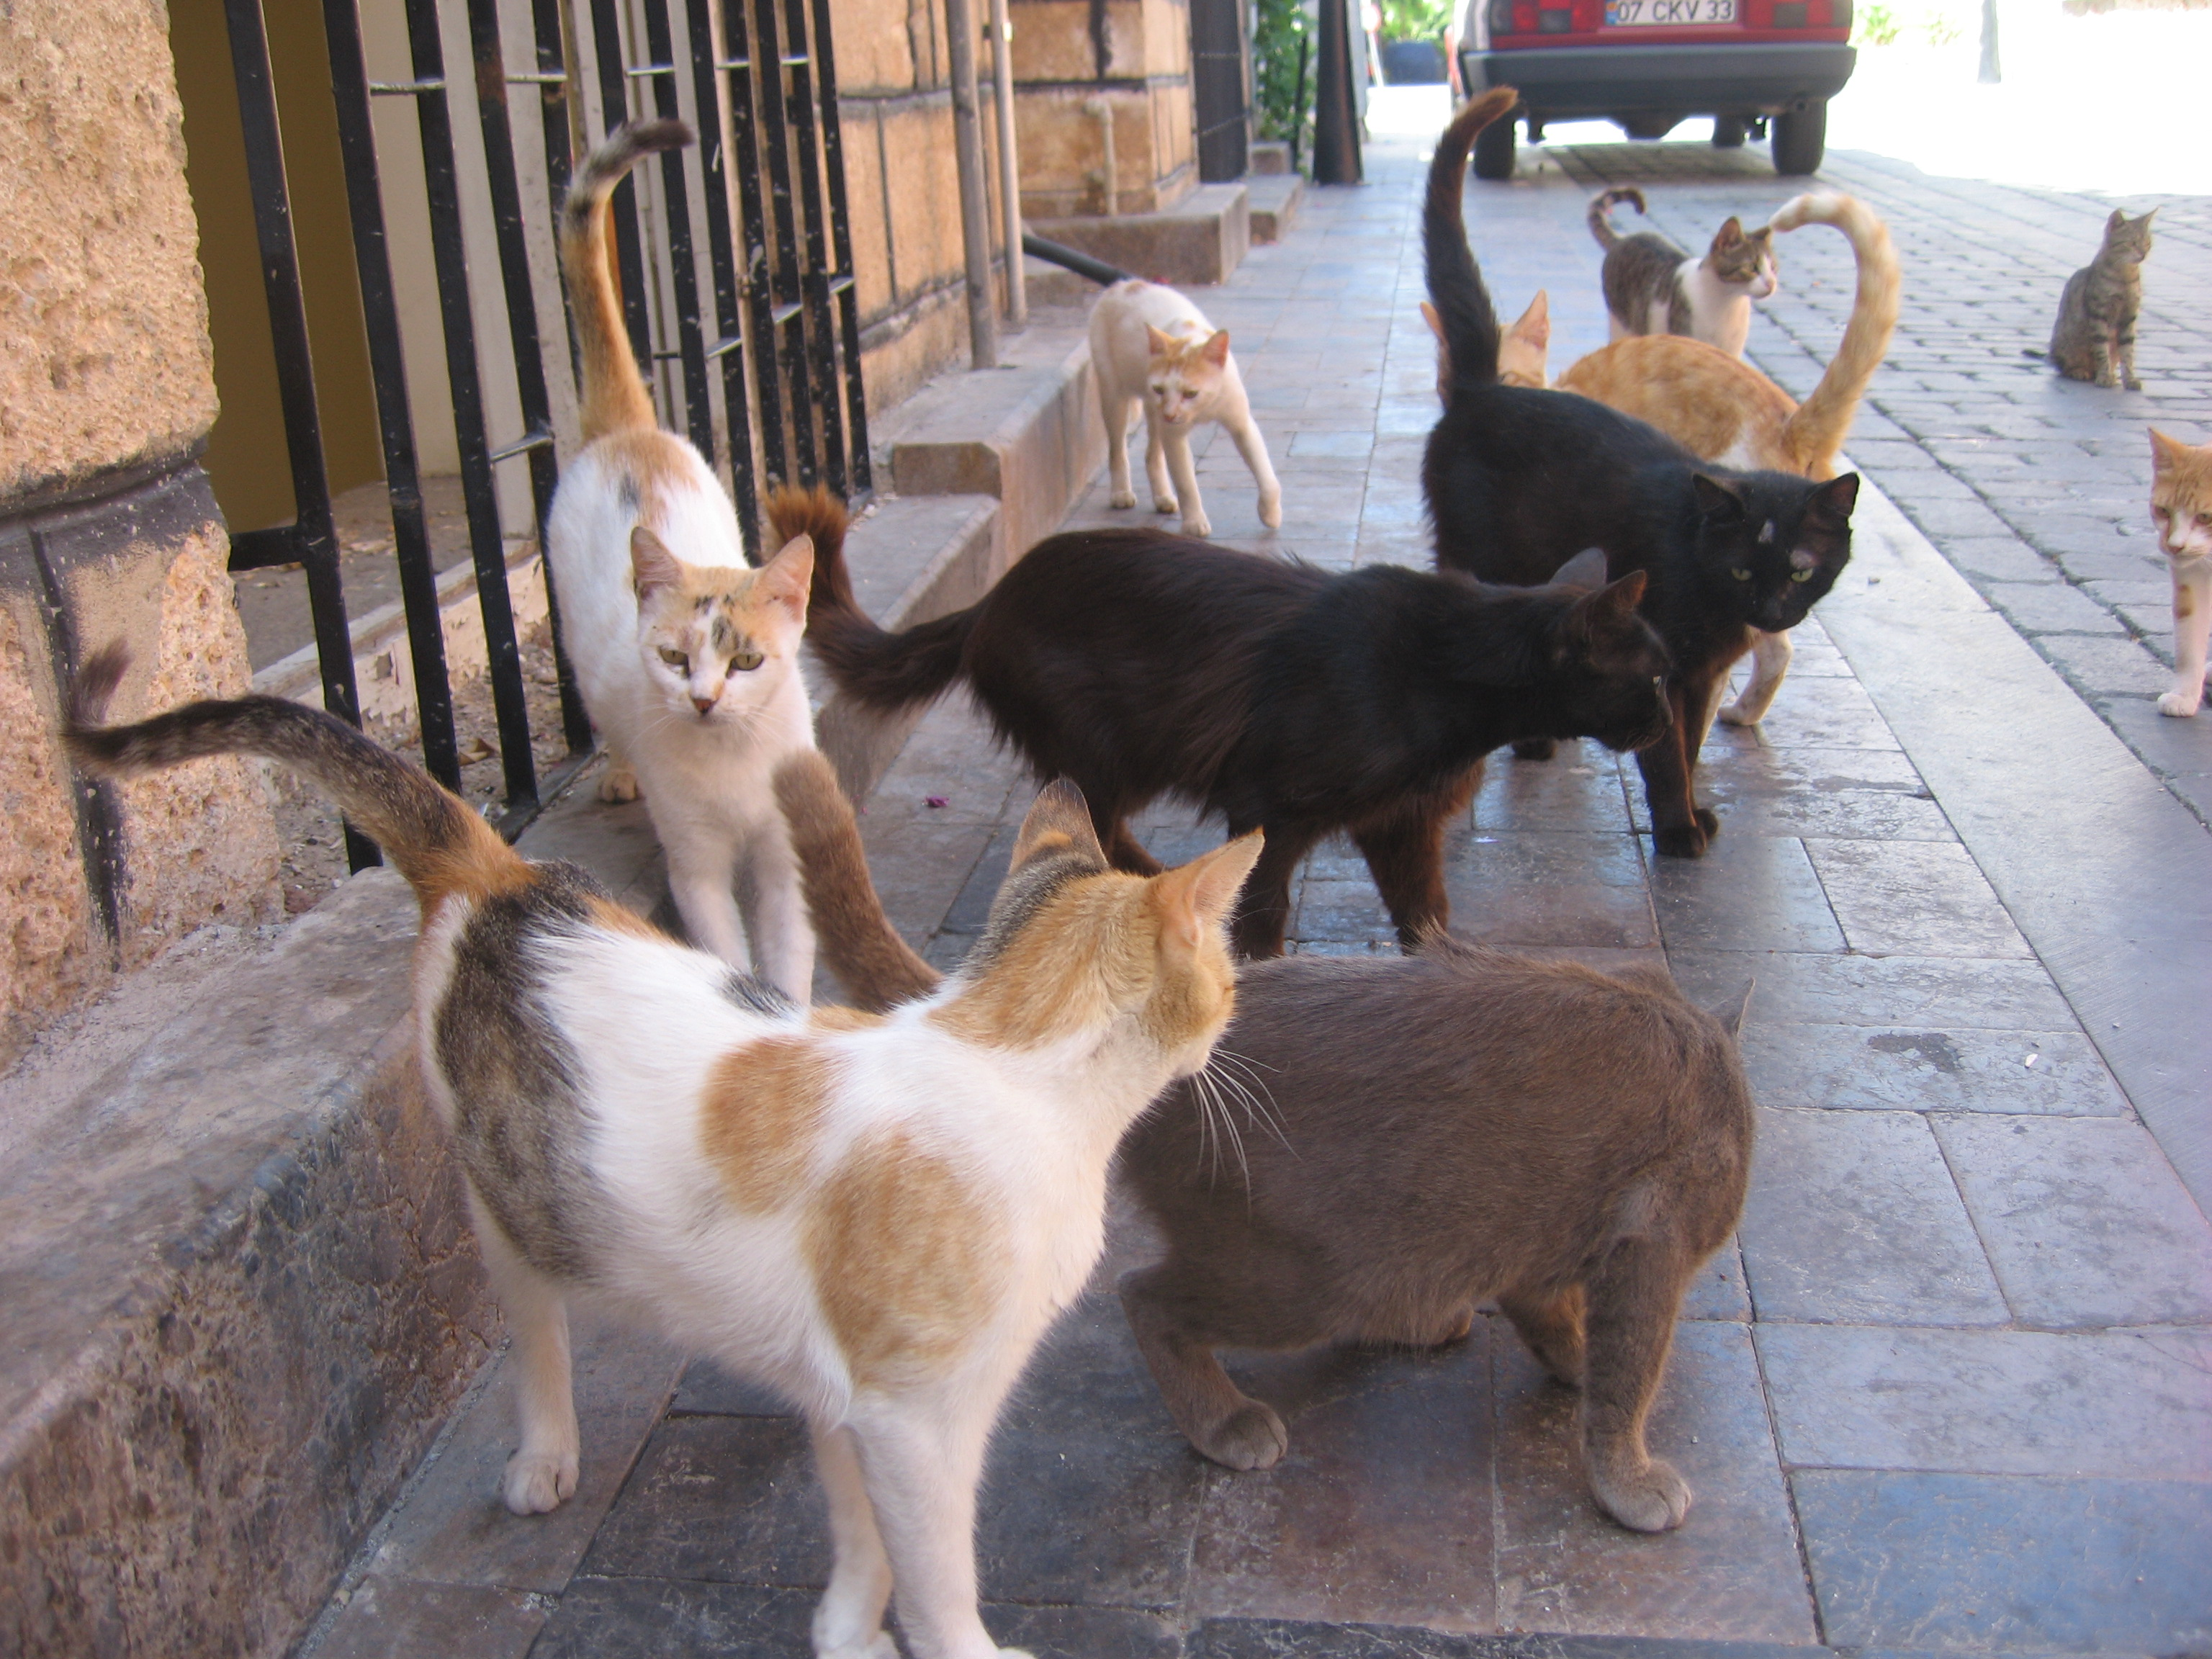 Herd of cats